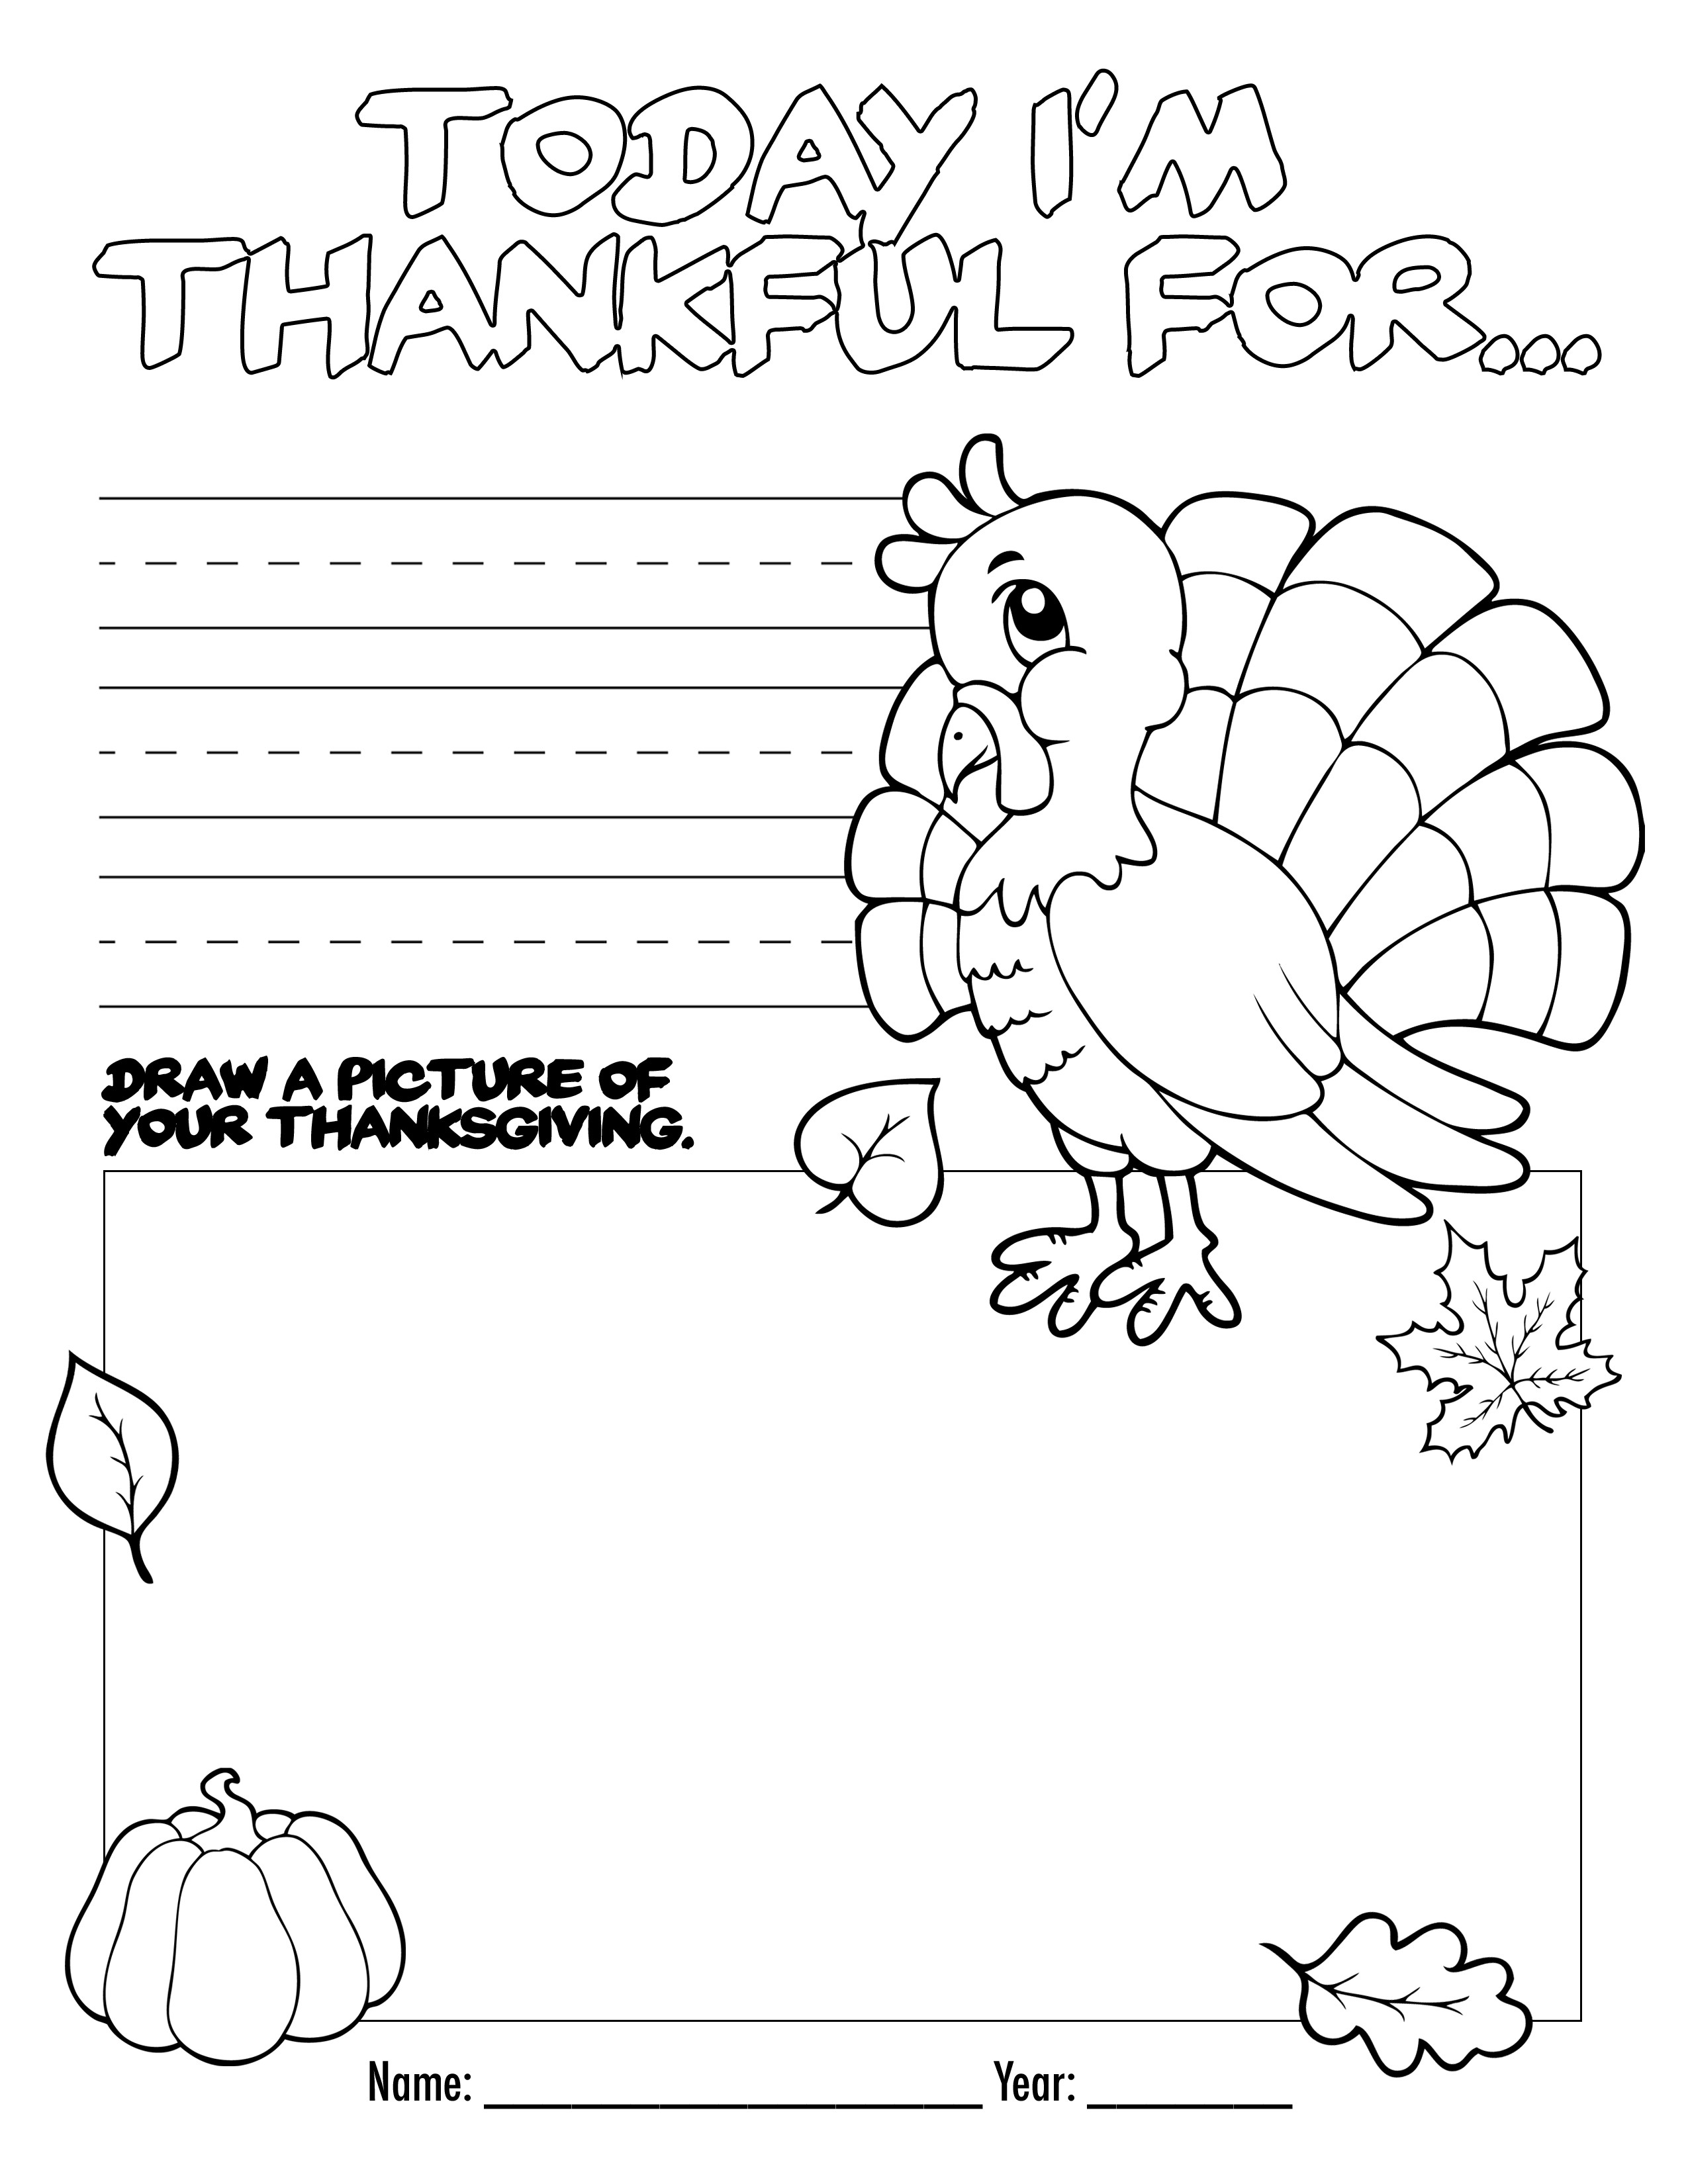 A Turkey For Thanksgiving Activity  Thanksgiving Coloring Book free printable How to Nest